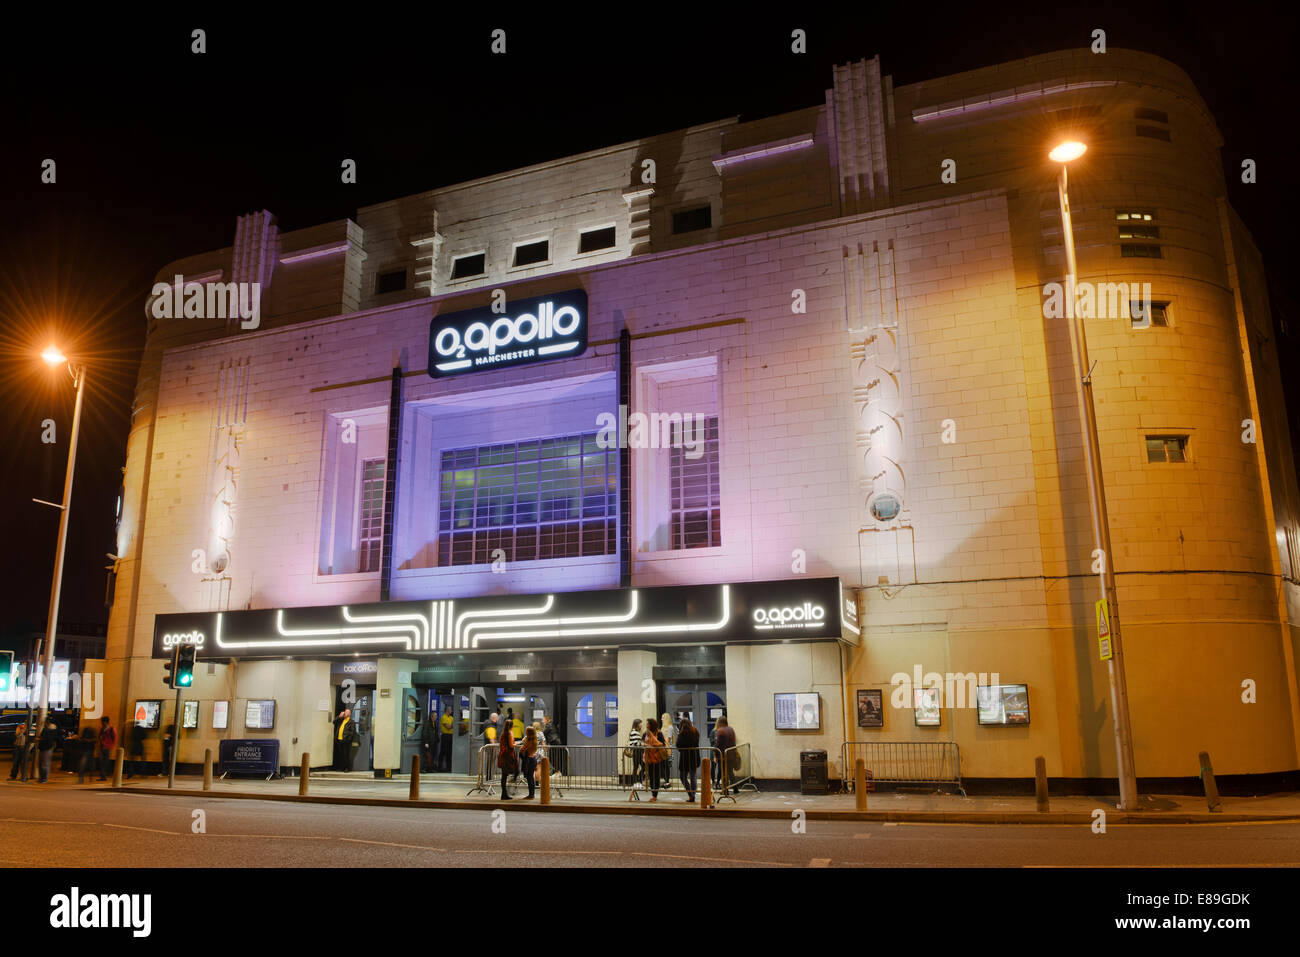 The O2 Apollo music venue on Stockport Road, Ardwick Green, in Manchester, taken on a dark night (Editorial use - Stock Image